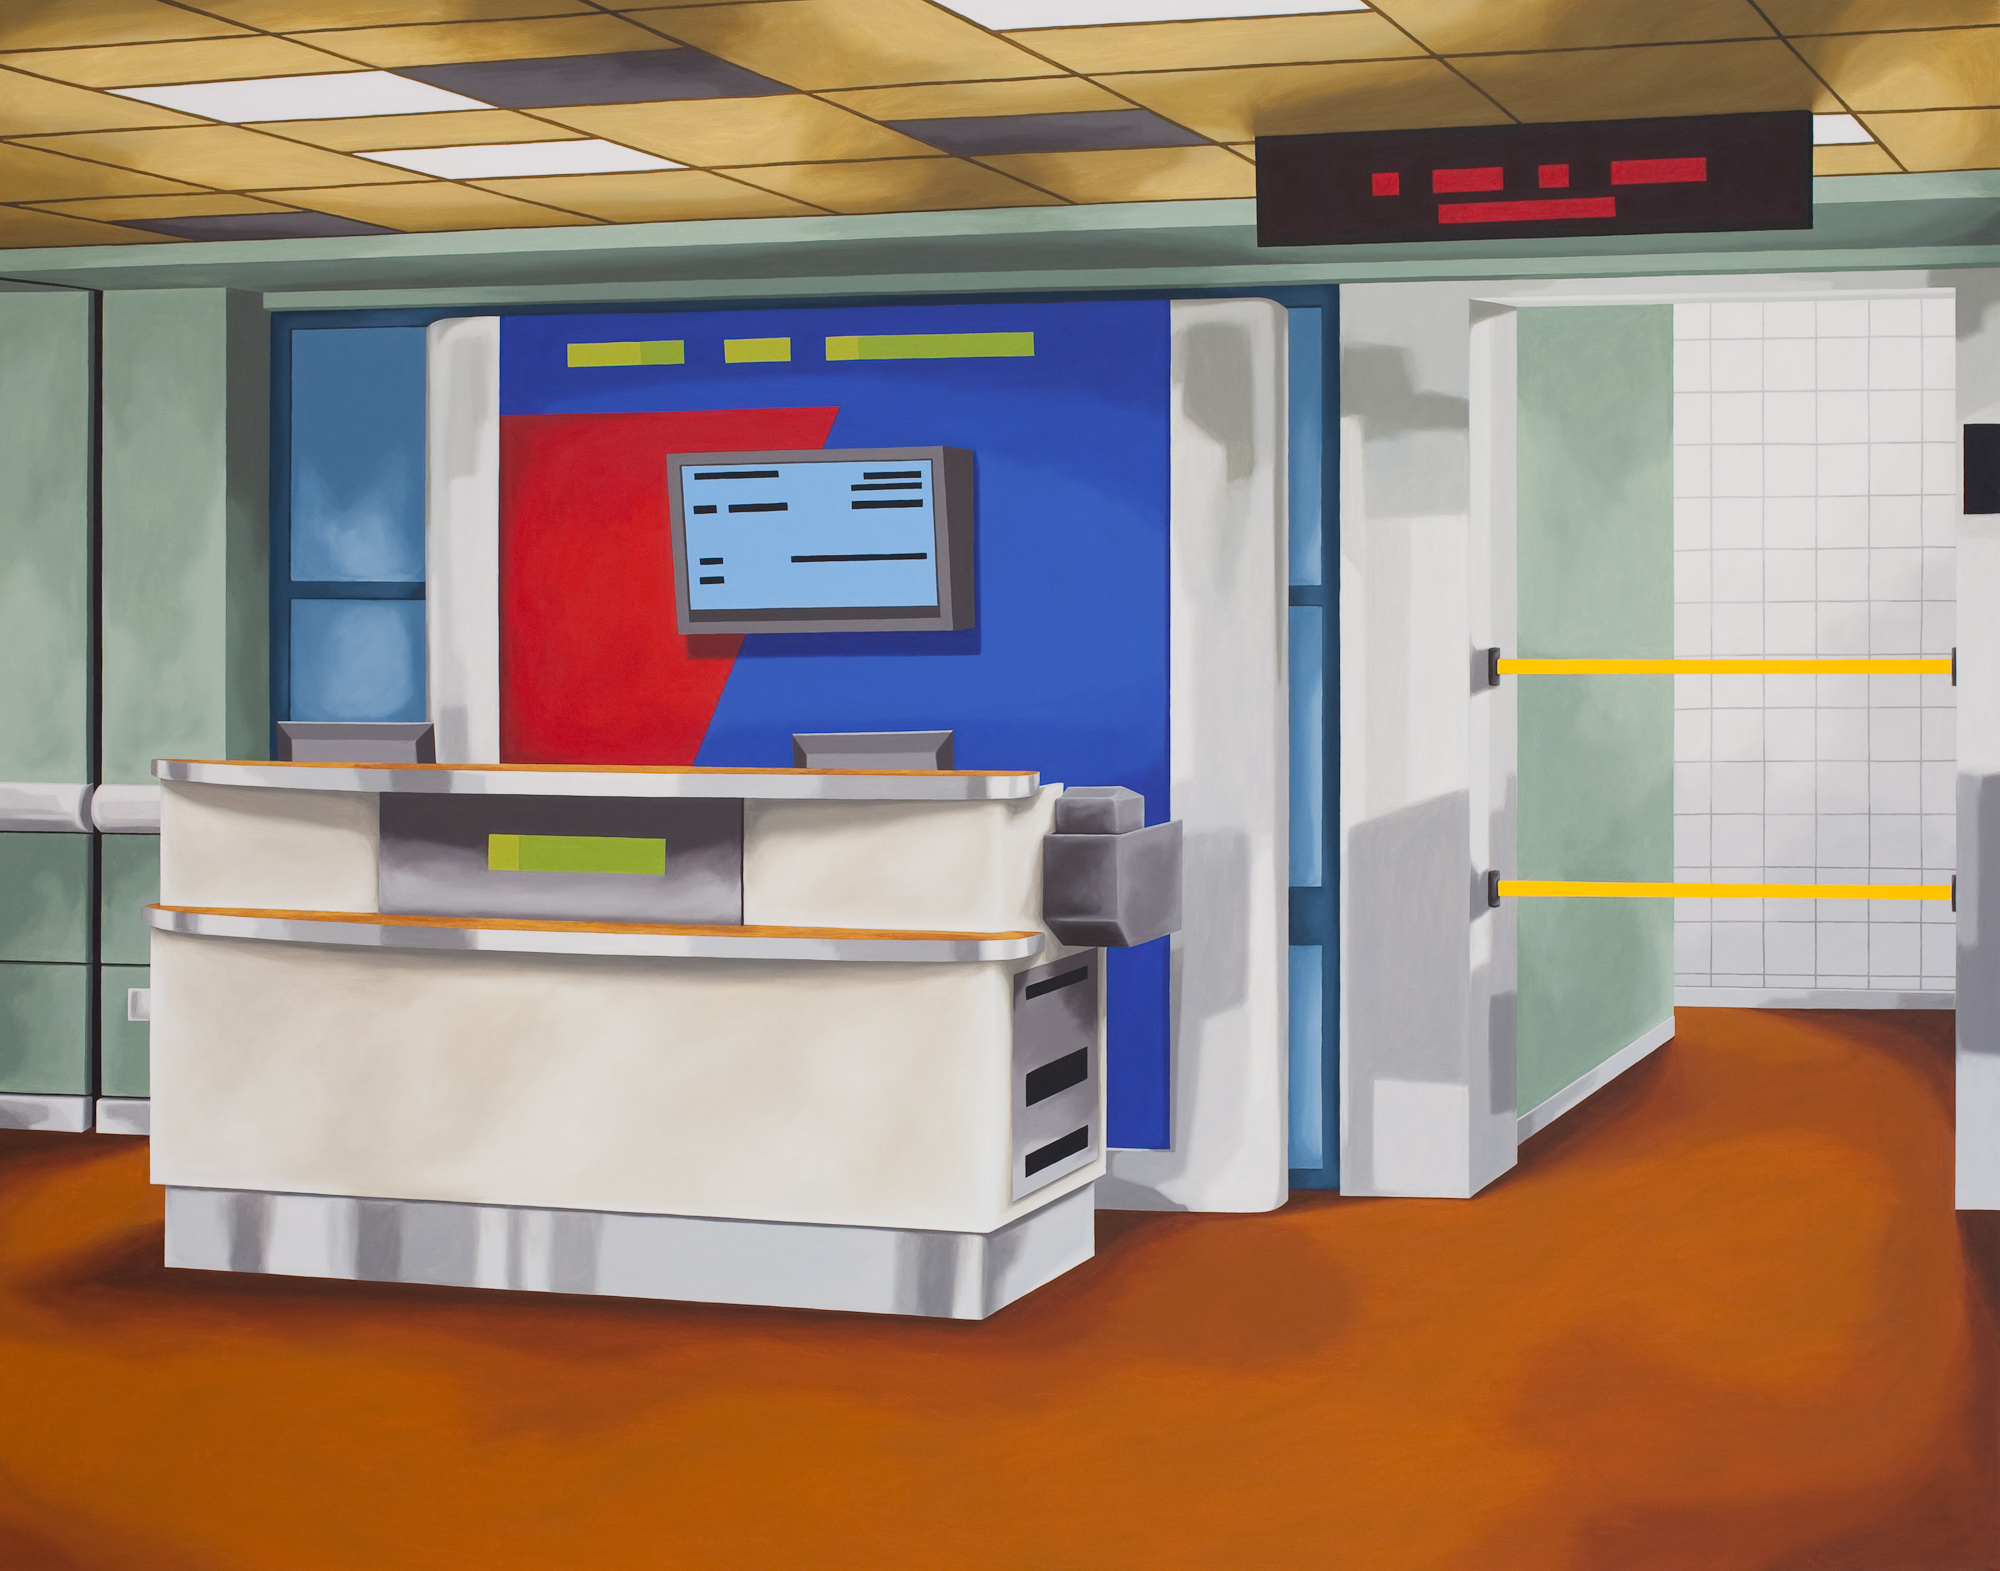 Gate A, 2011, Oil on Canvas, 52 X 66 inches